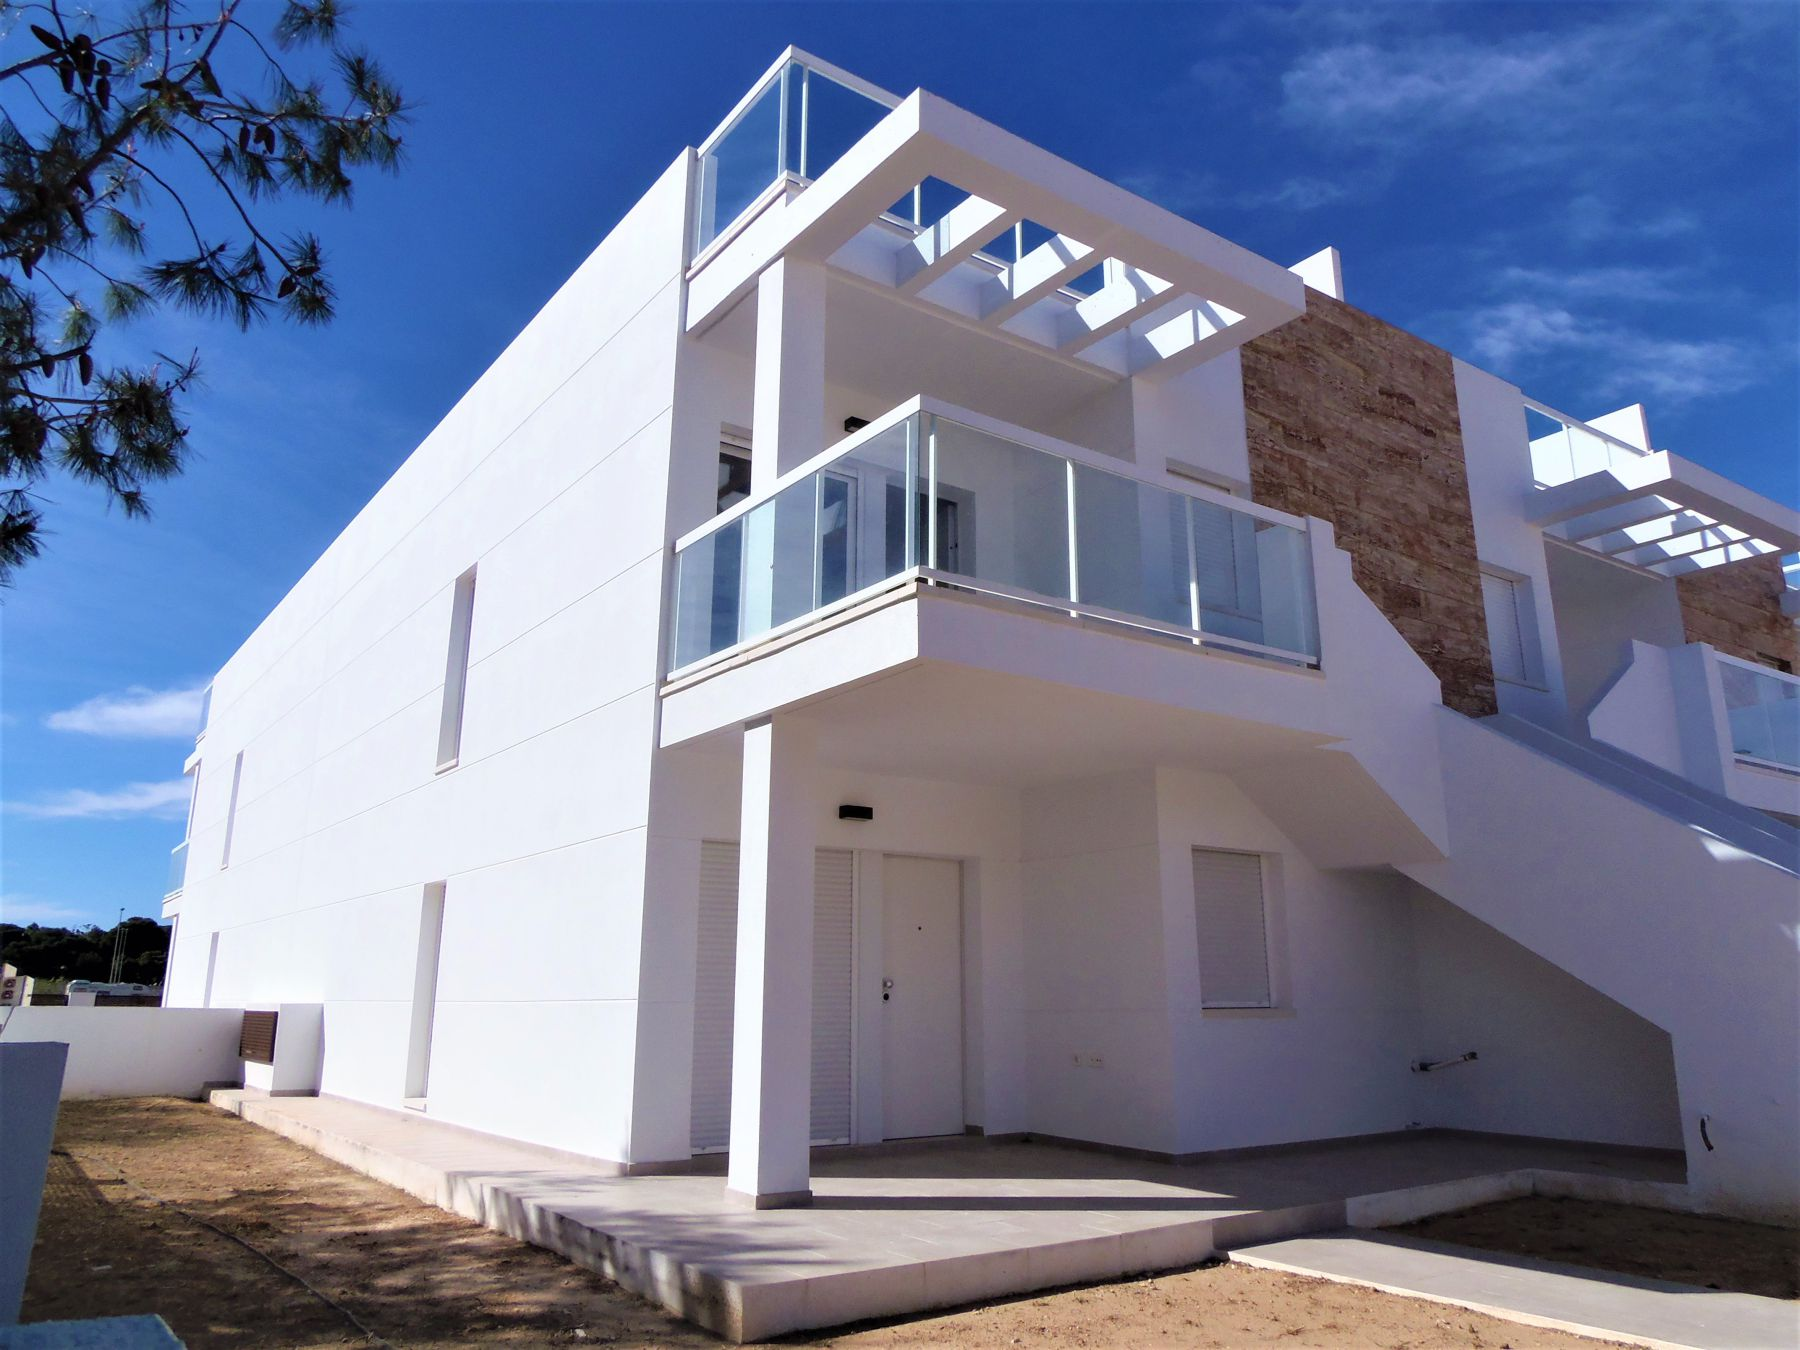 New Build 2 Bedrooms Apartments For Sale in San Pedro de Pinatar